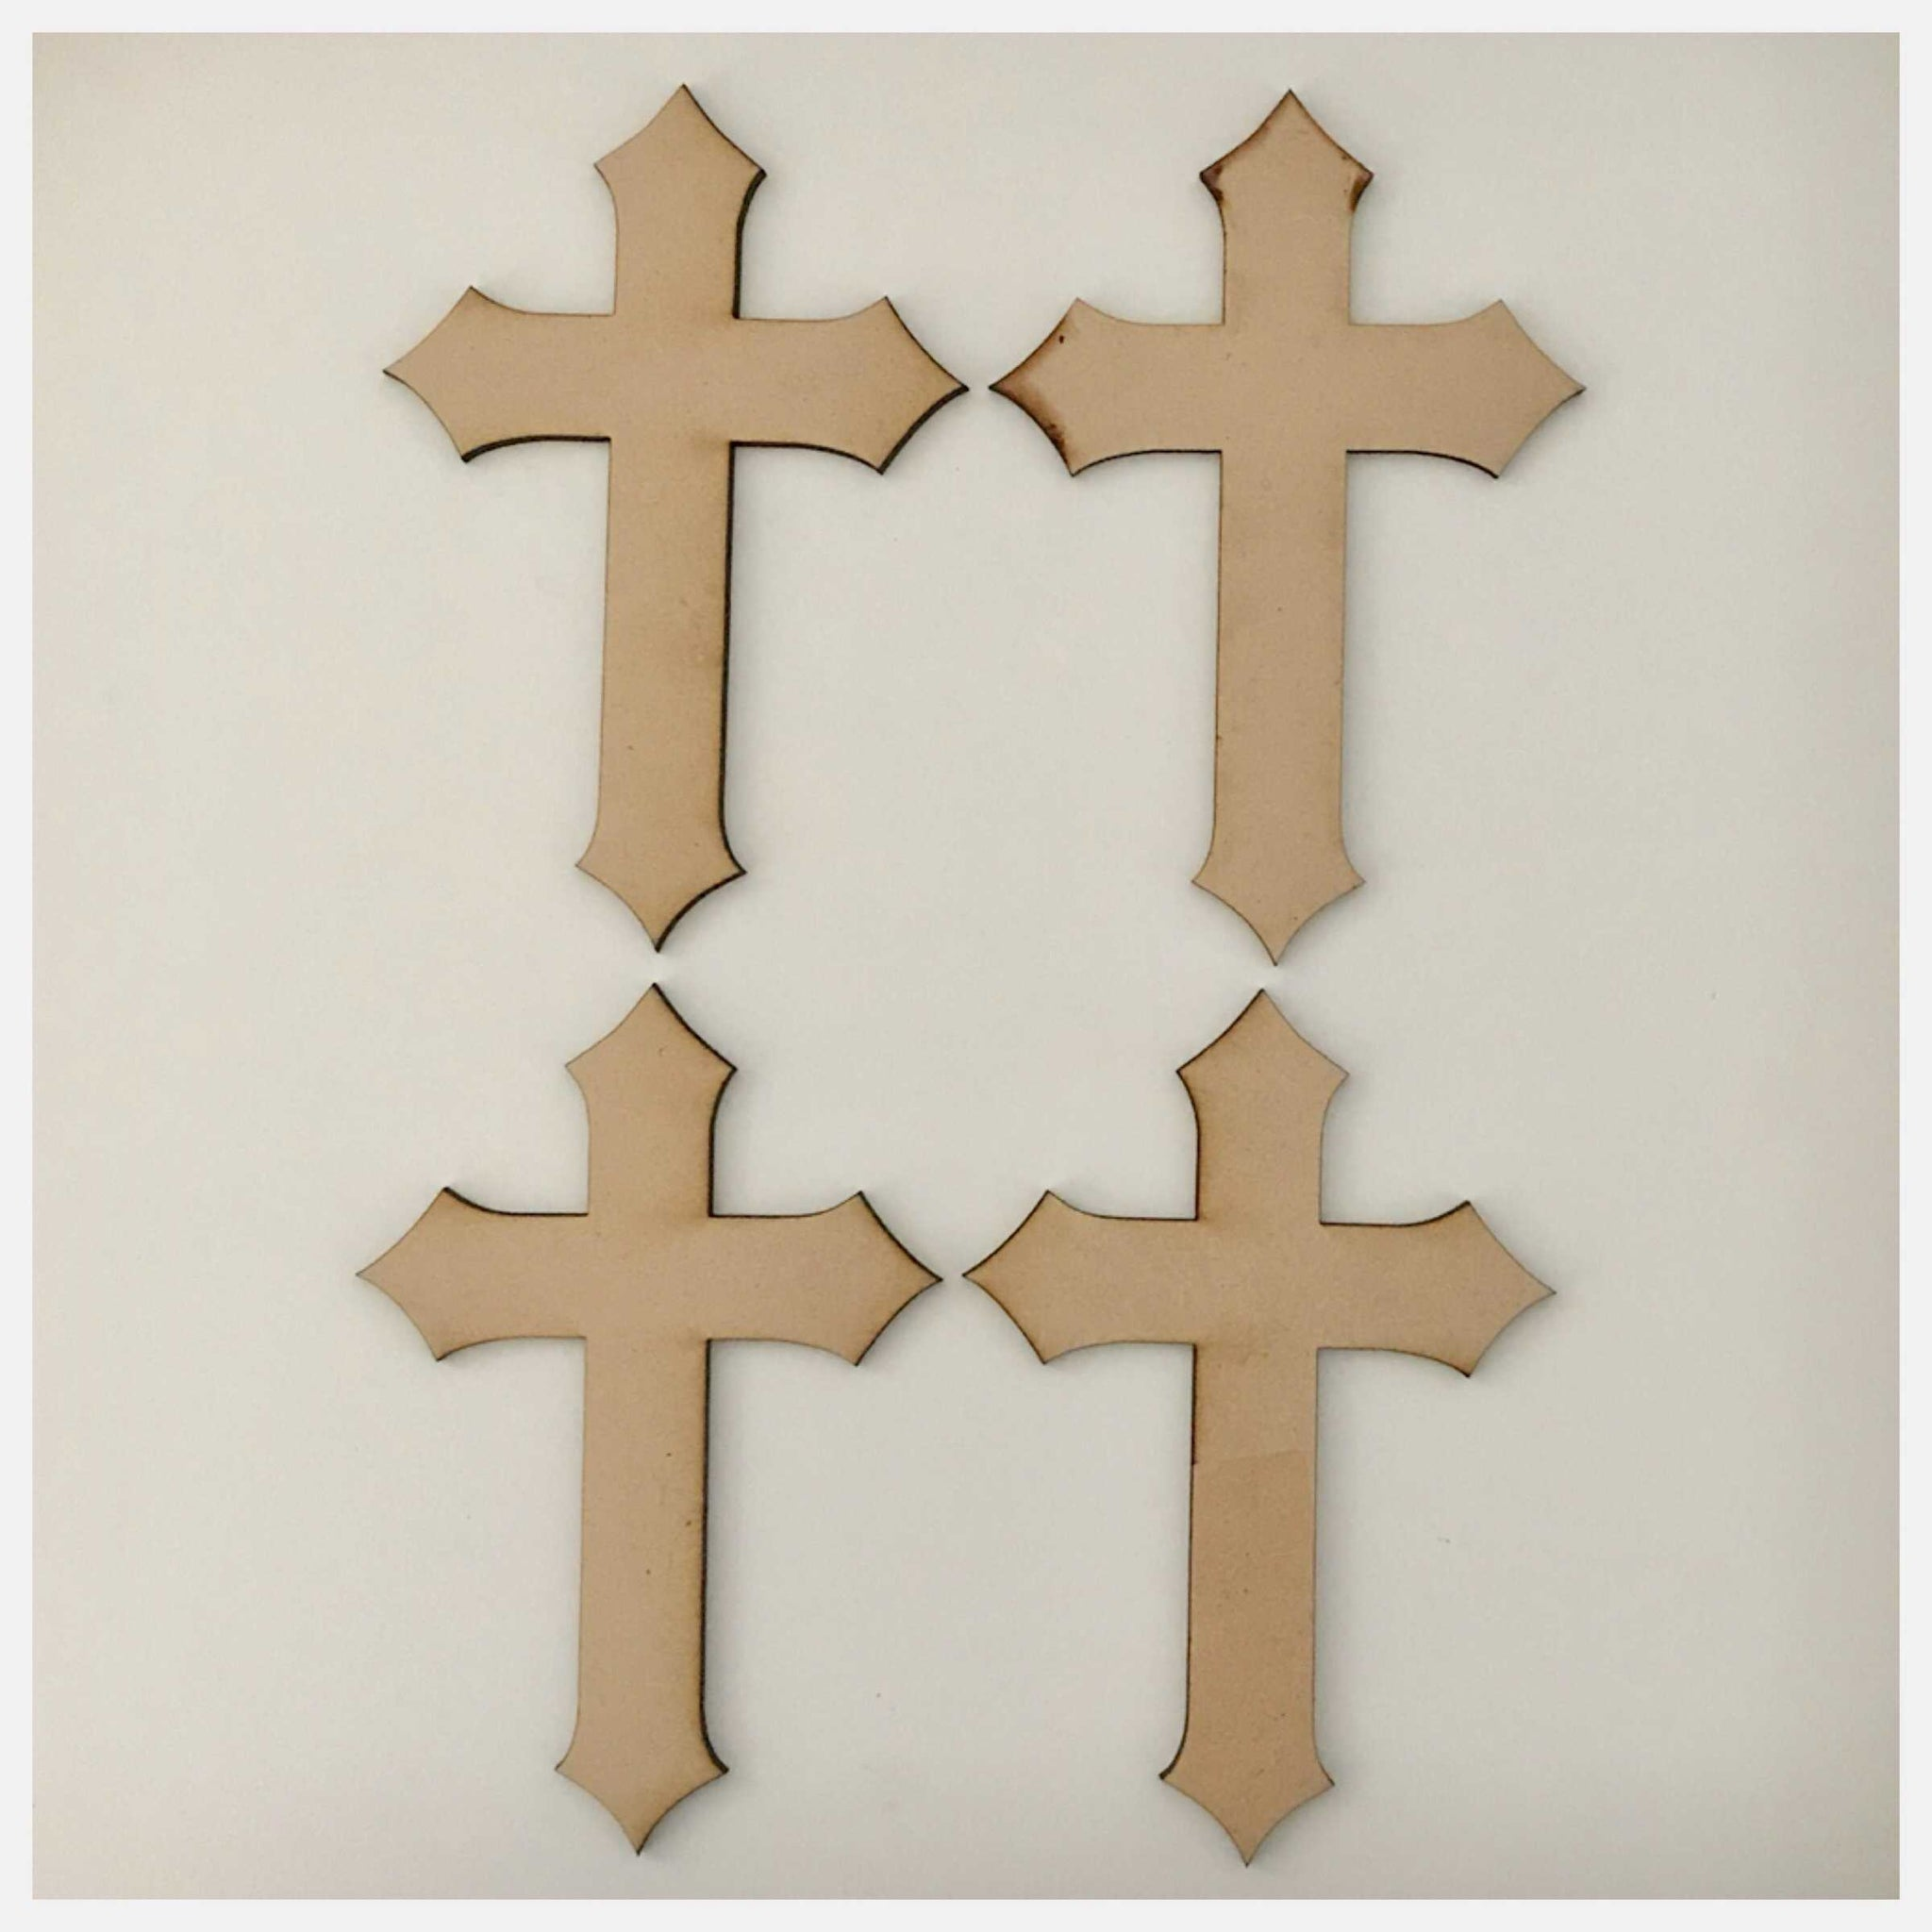 Cross MDF Pointed Small Shape DIY Raw Cut Out Art Religious Craft Decor